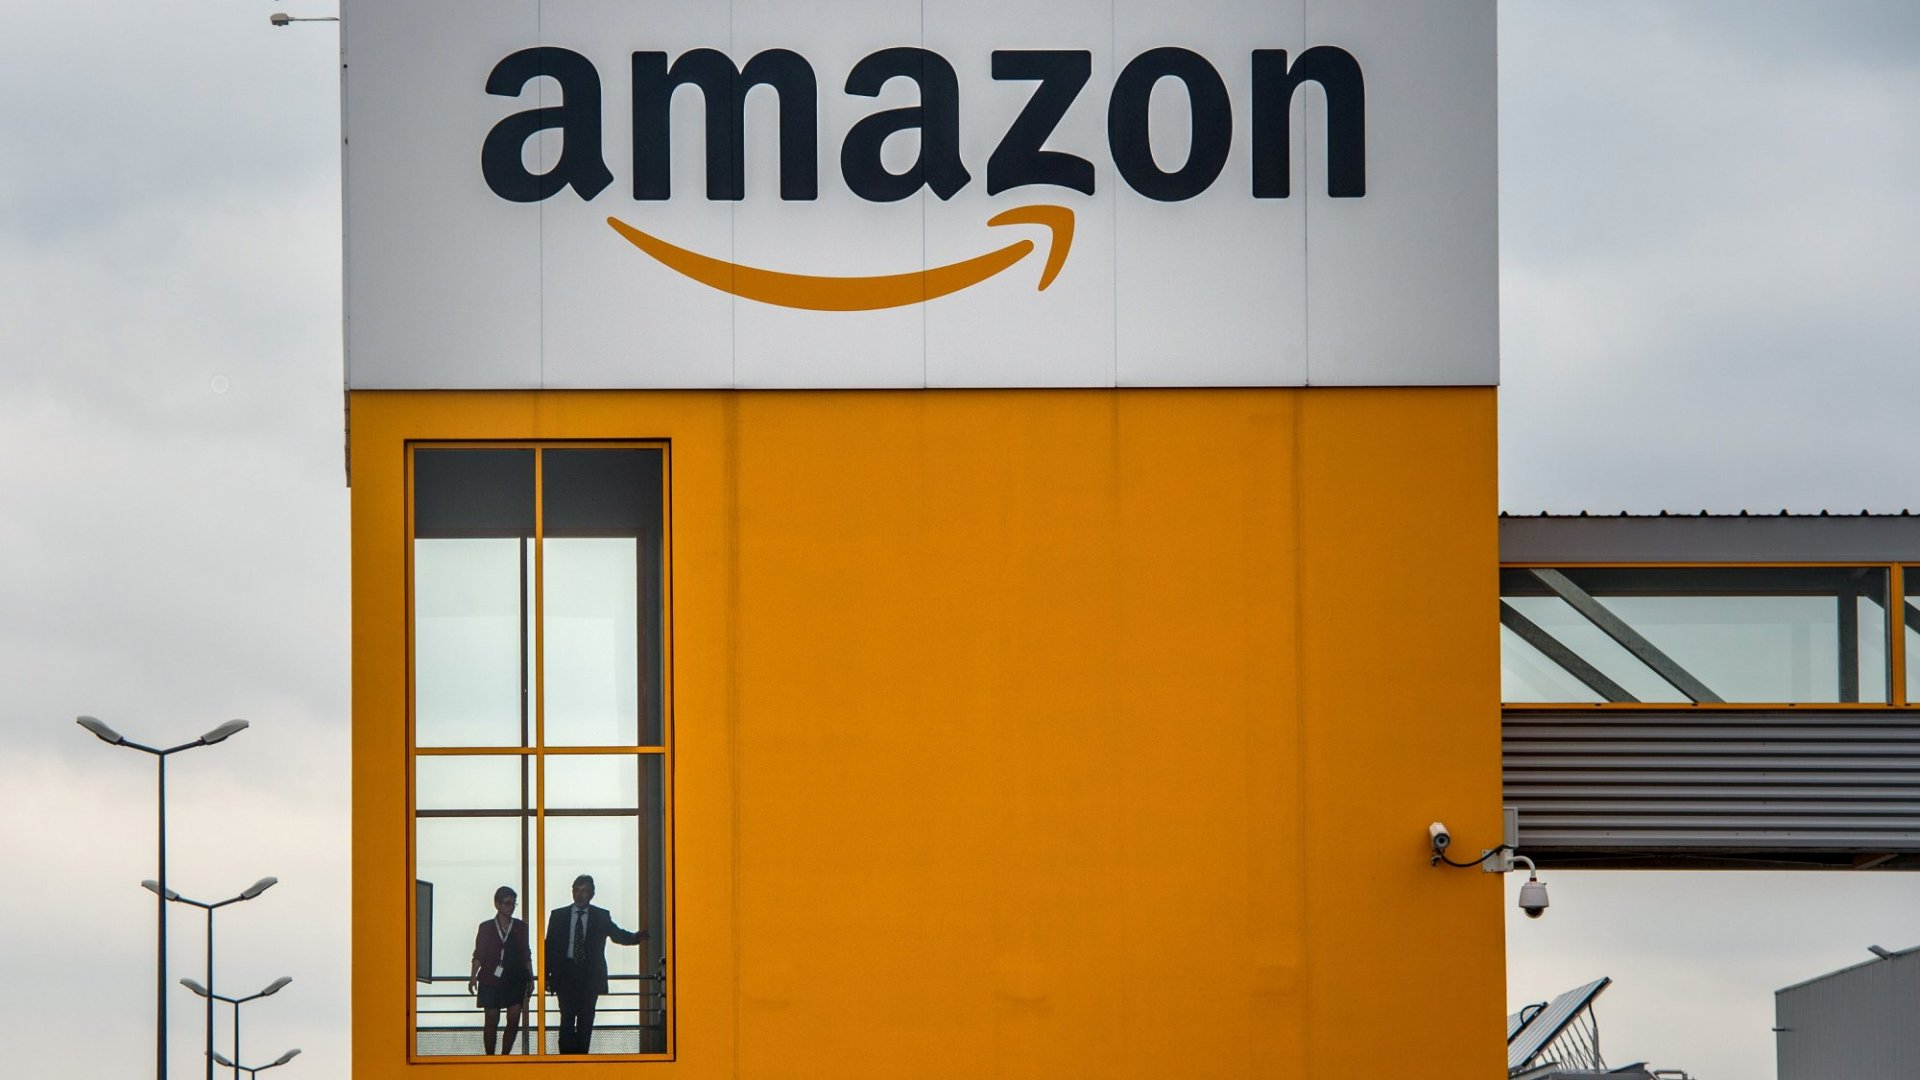 Amazon Ads Are Becoming Bigger than Google: Here's What You Need to Know